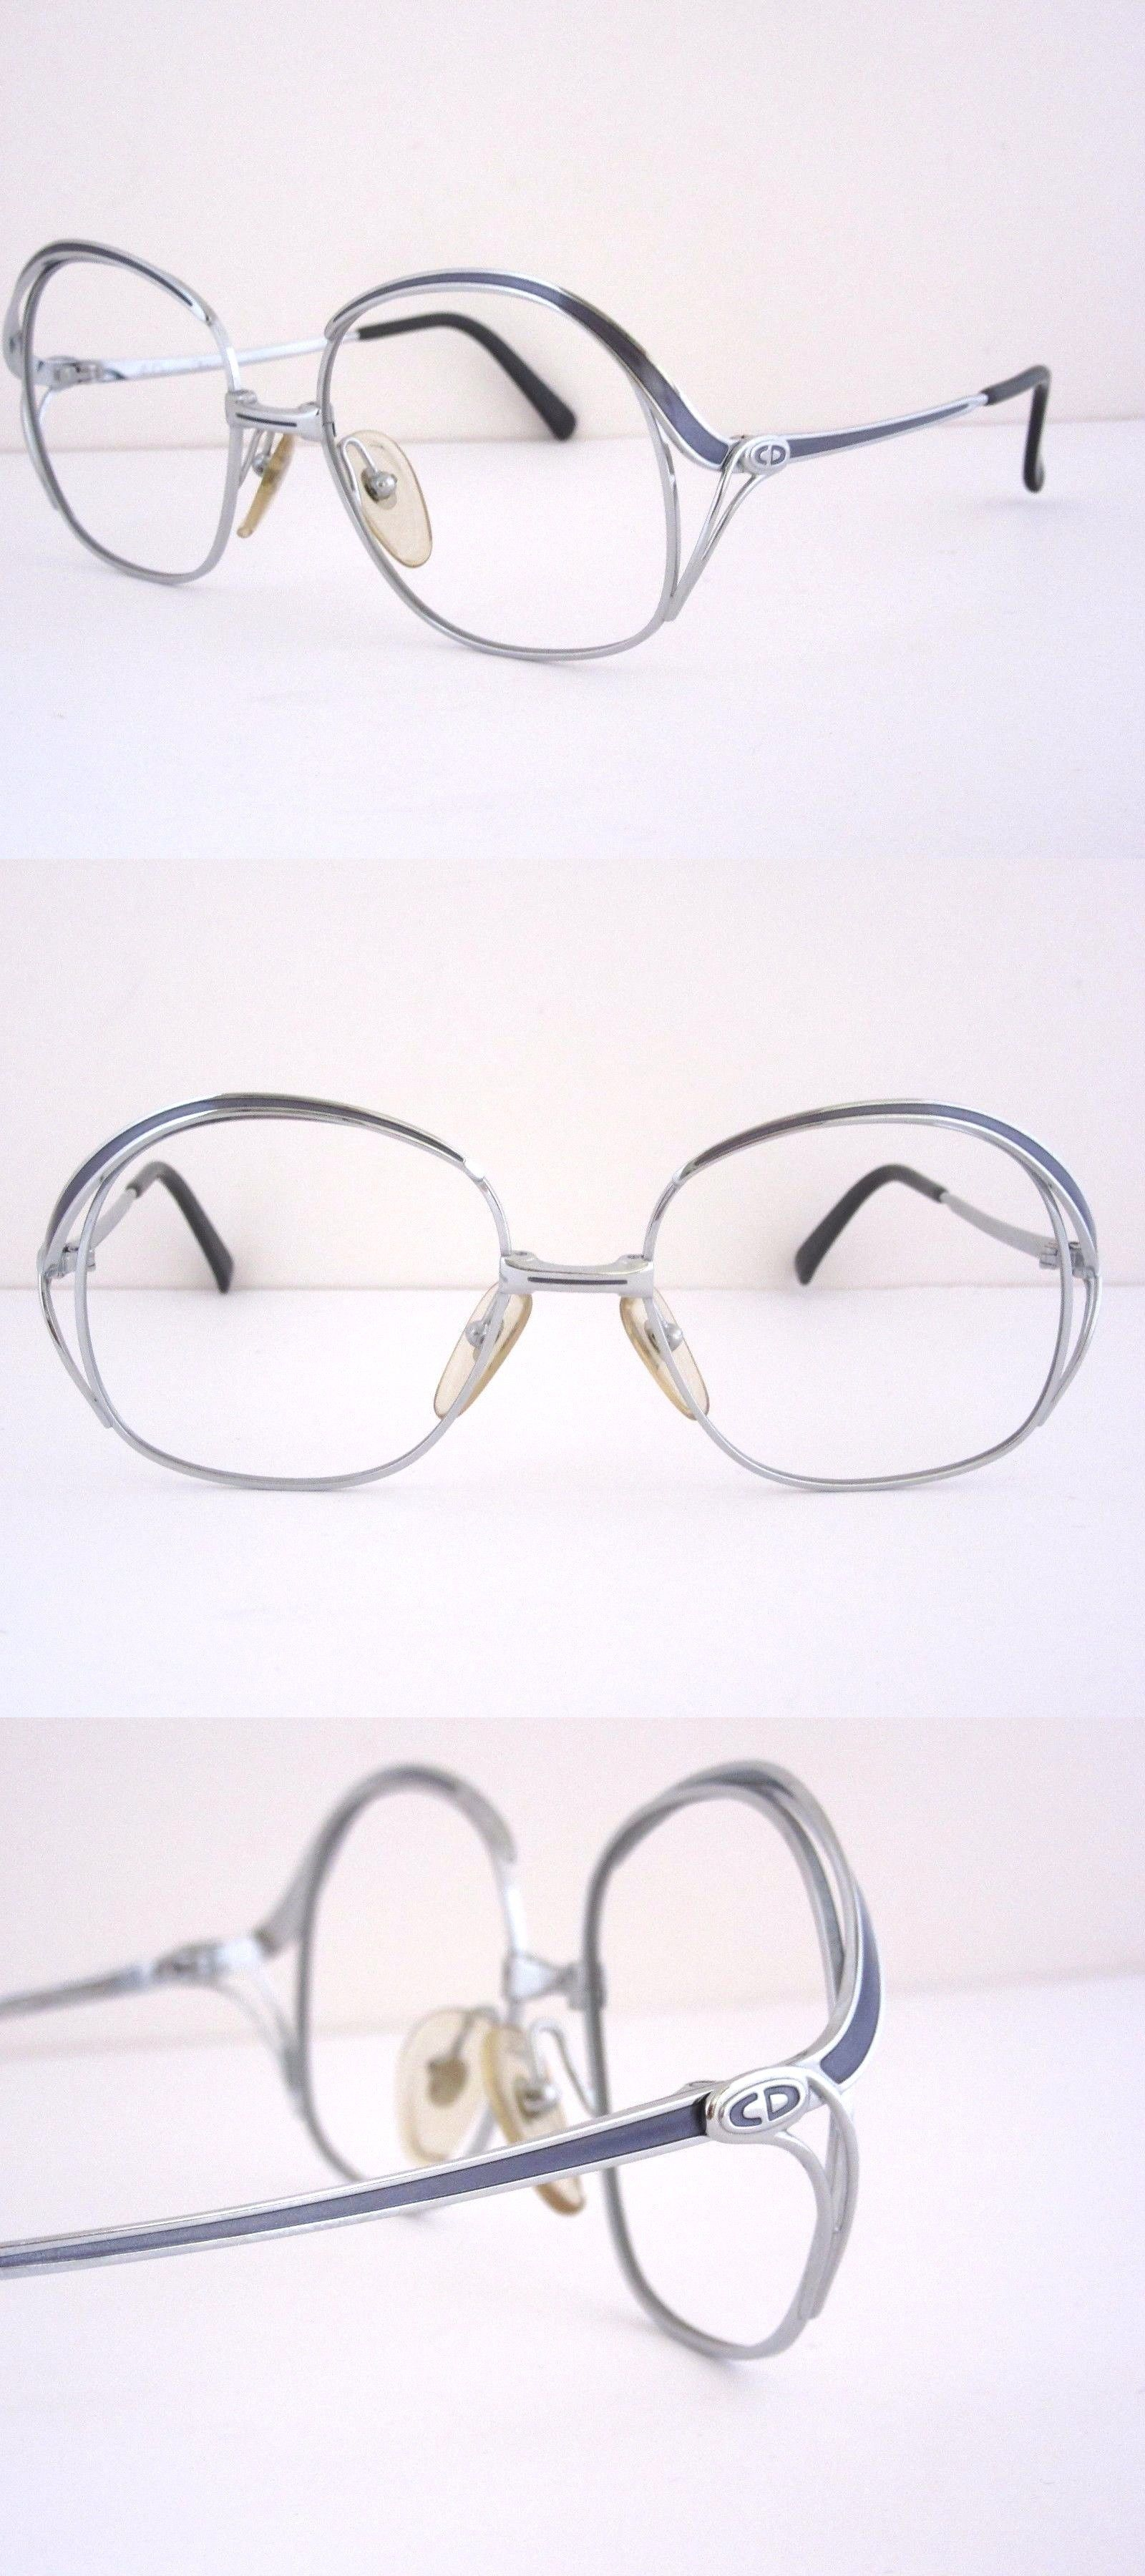 2b587d3614a Sunglasses 48559  Christian Dior 2145 72 Gold Blue Gray Eyeglass Frames